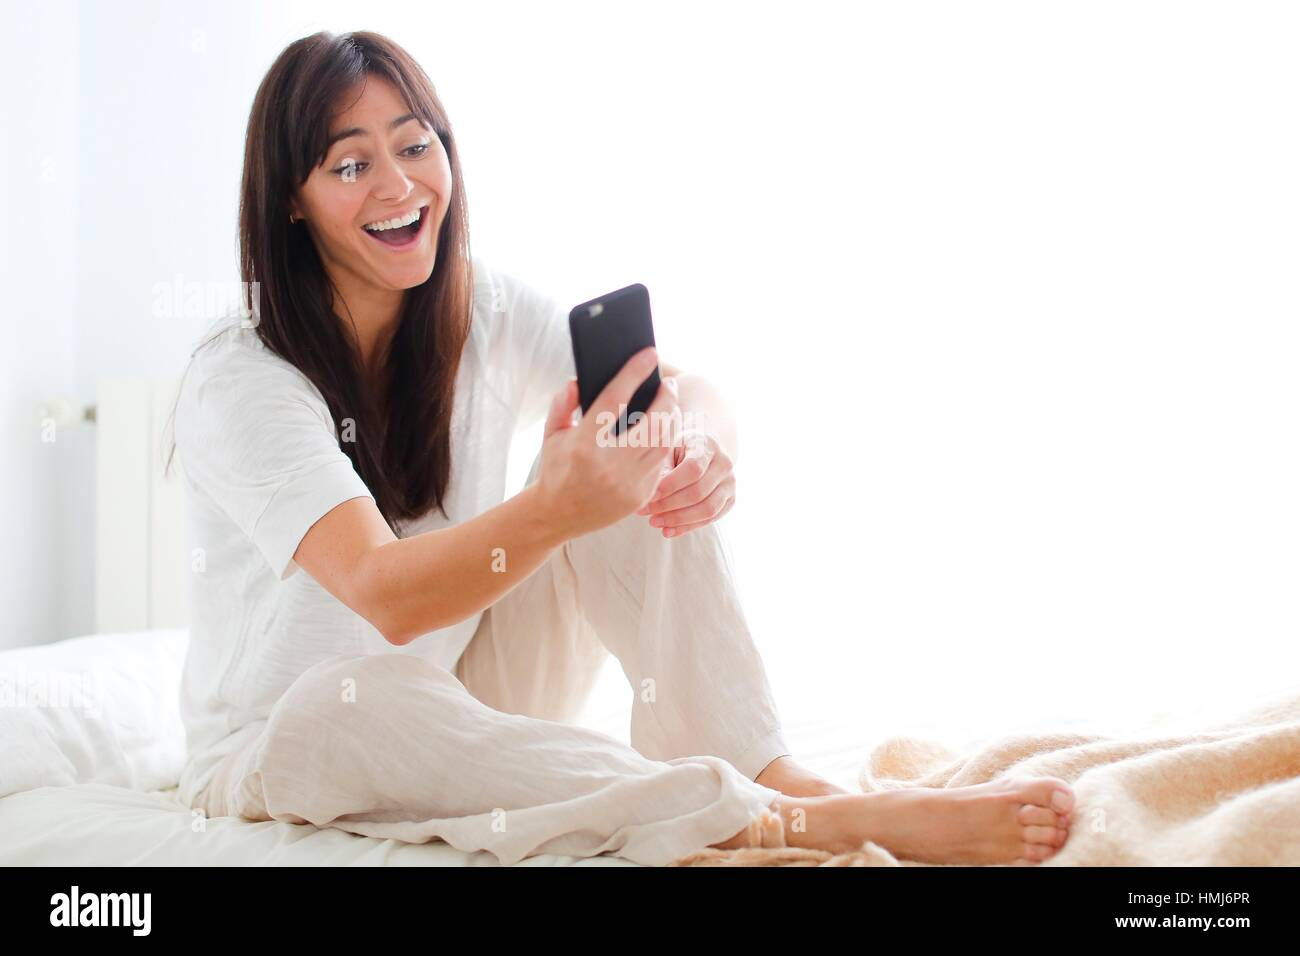 Woman using smartphone showing surprise - Stock Image